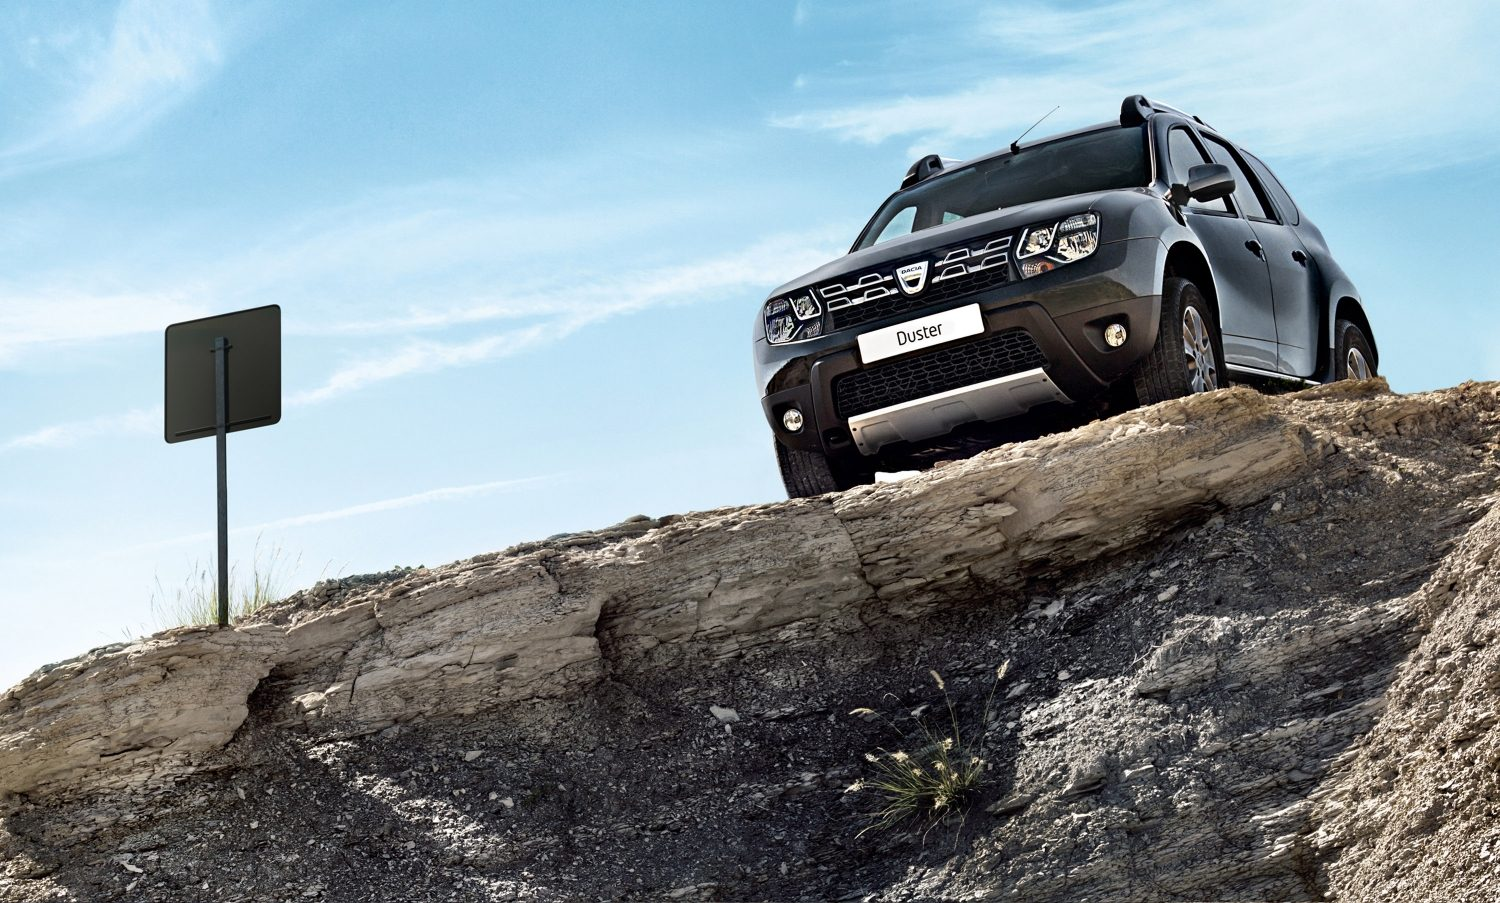 dacia-duster-h79-ph2-beauty-shot-desktop-001.jpg.ximg.l_full_m.smart.jpg